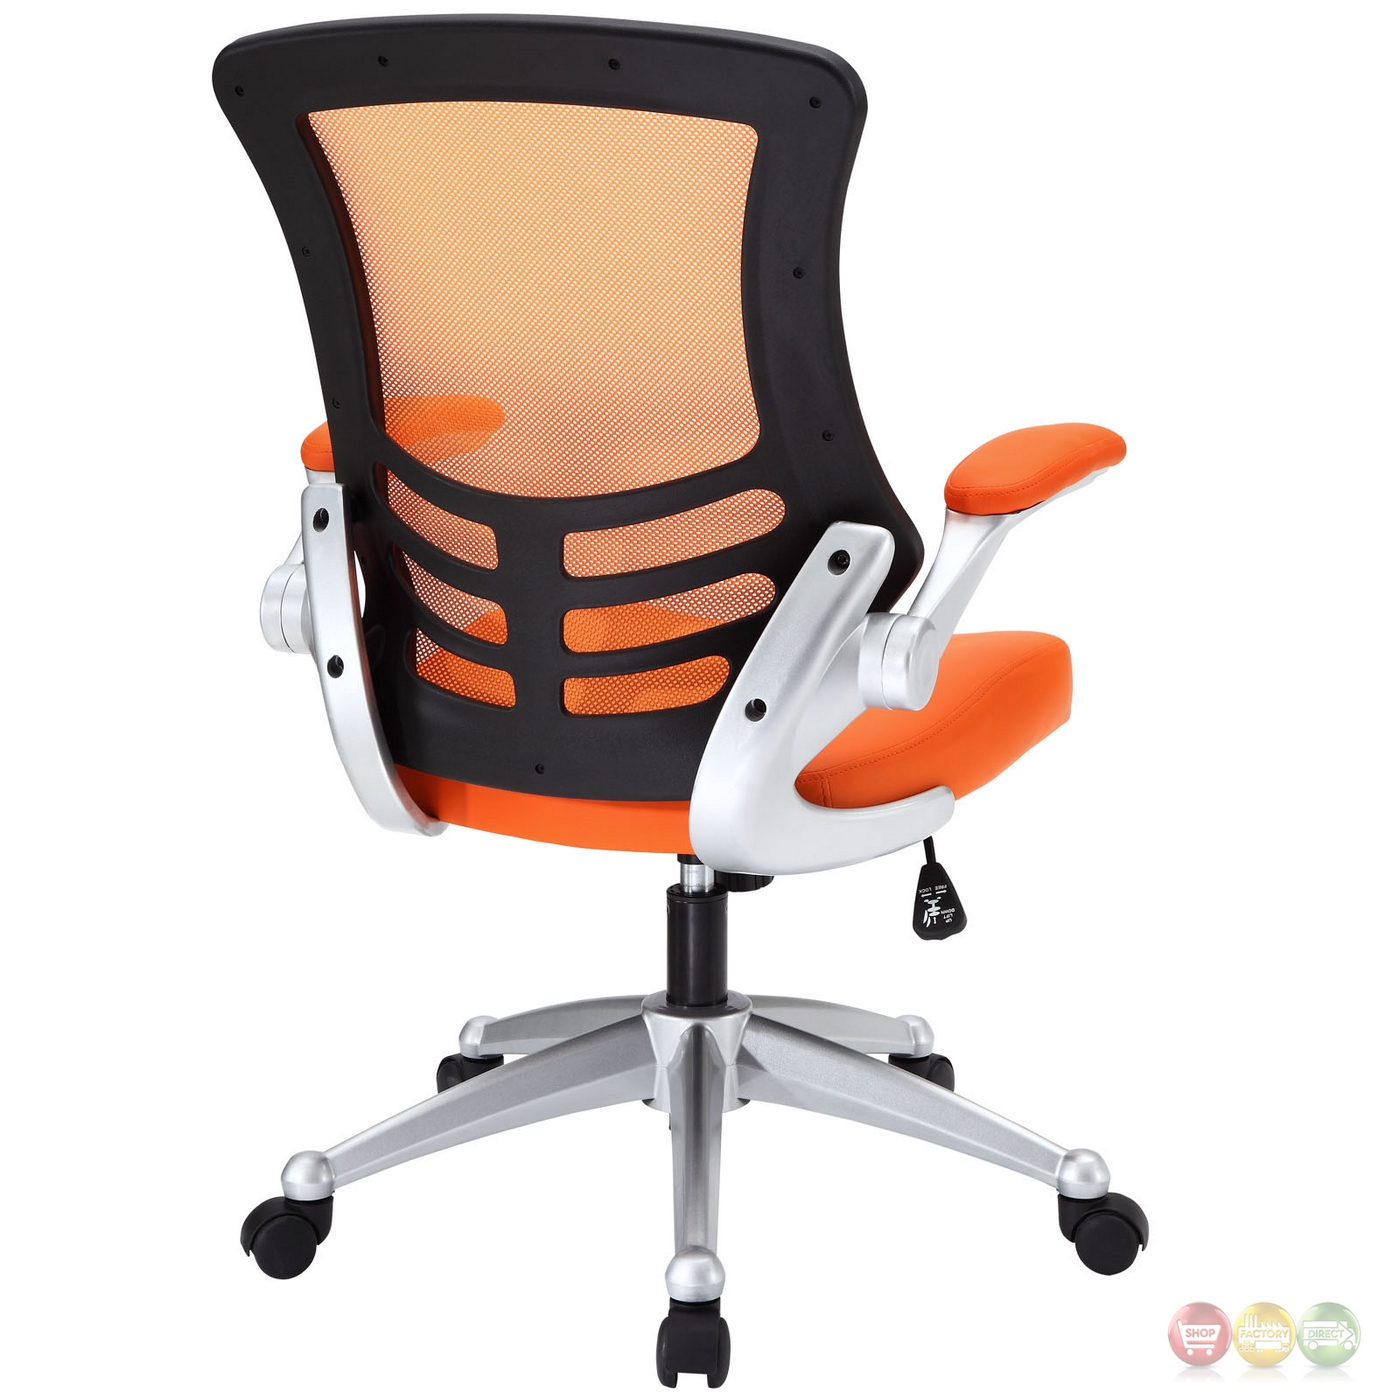 office chair orange massage chairs for sale attainment modern ergonomic mesh back w